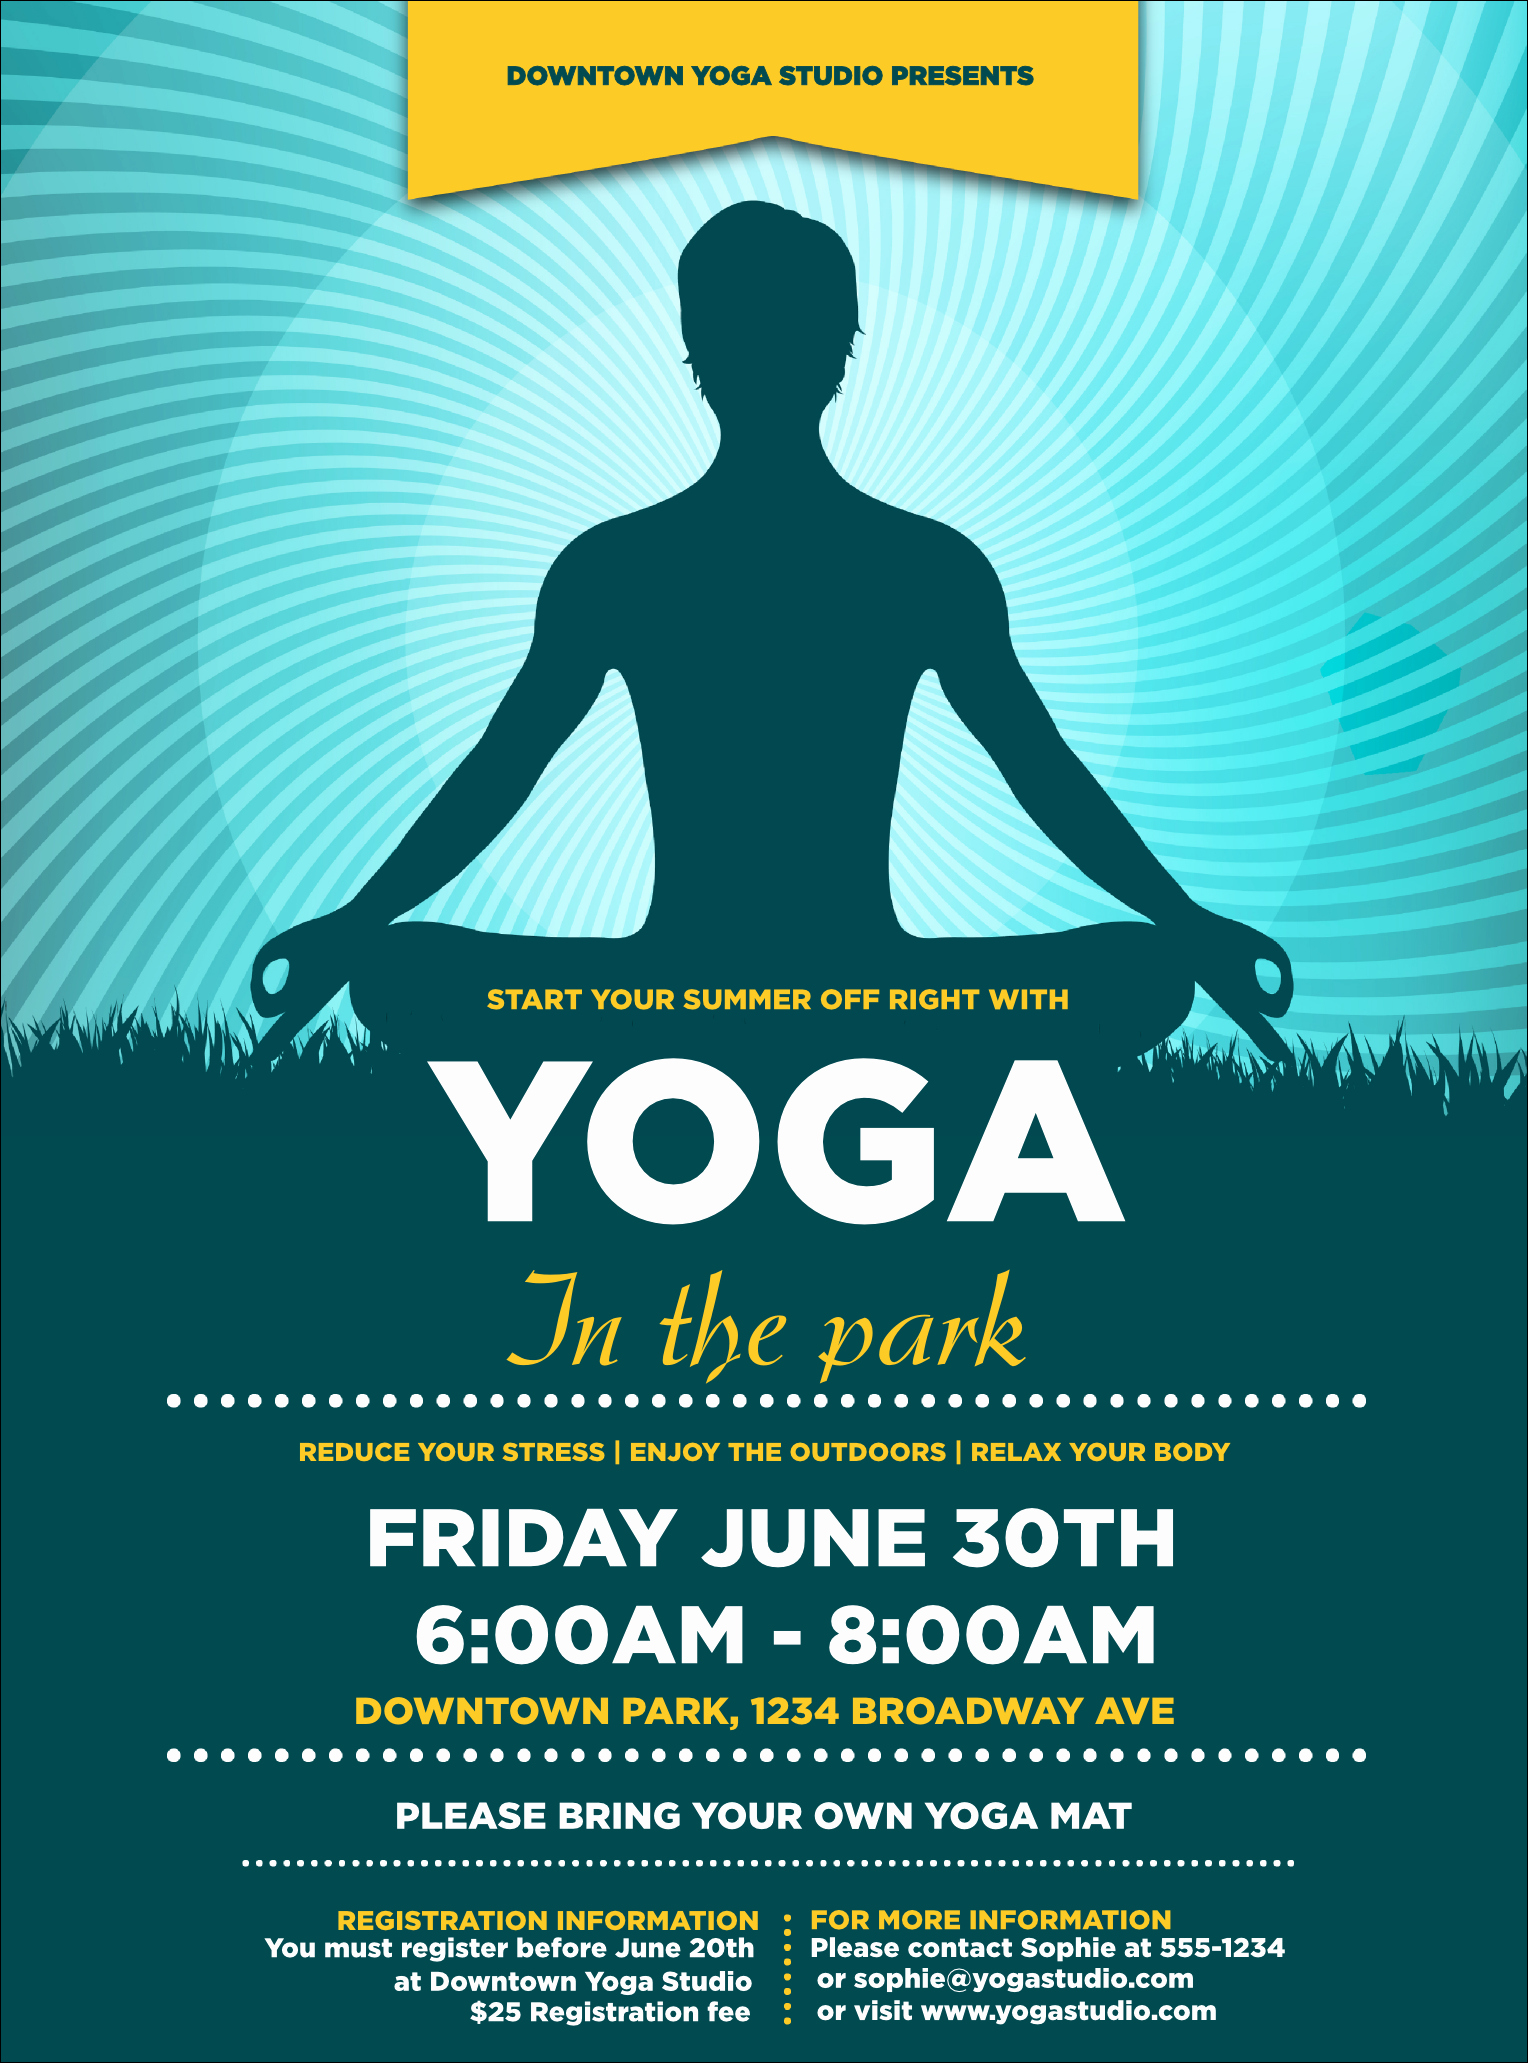 Yoga Flyer Template Free Awesome Yoga Meditation Flyer